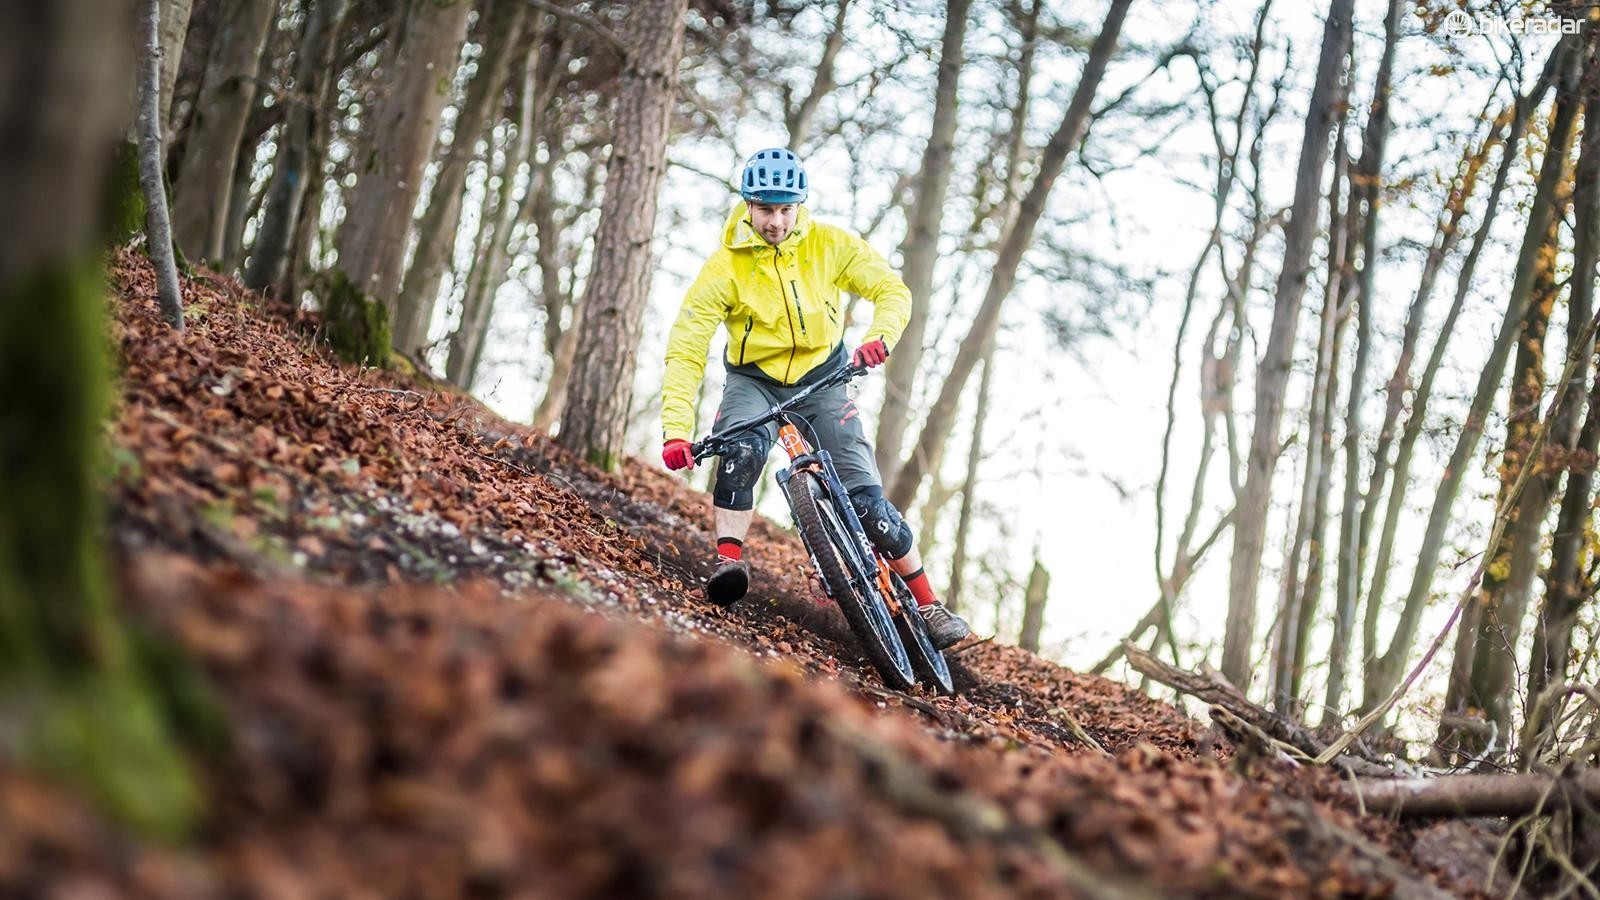 Don't be afraid to put your foot out when riding off-camber sections of trail